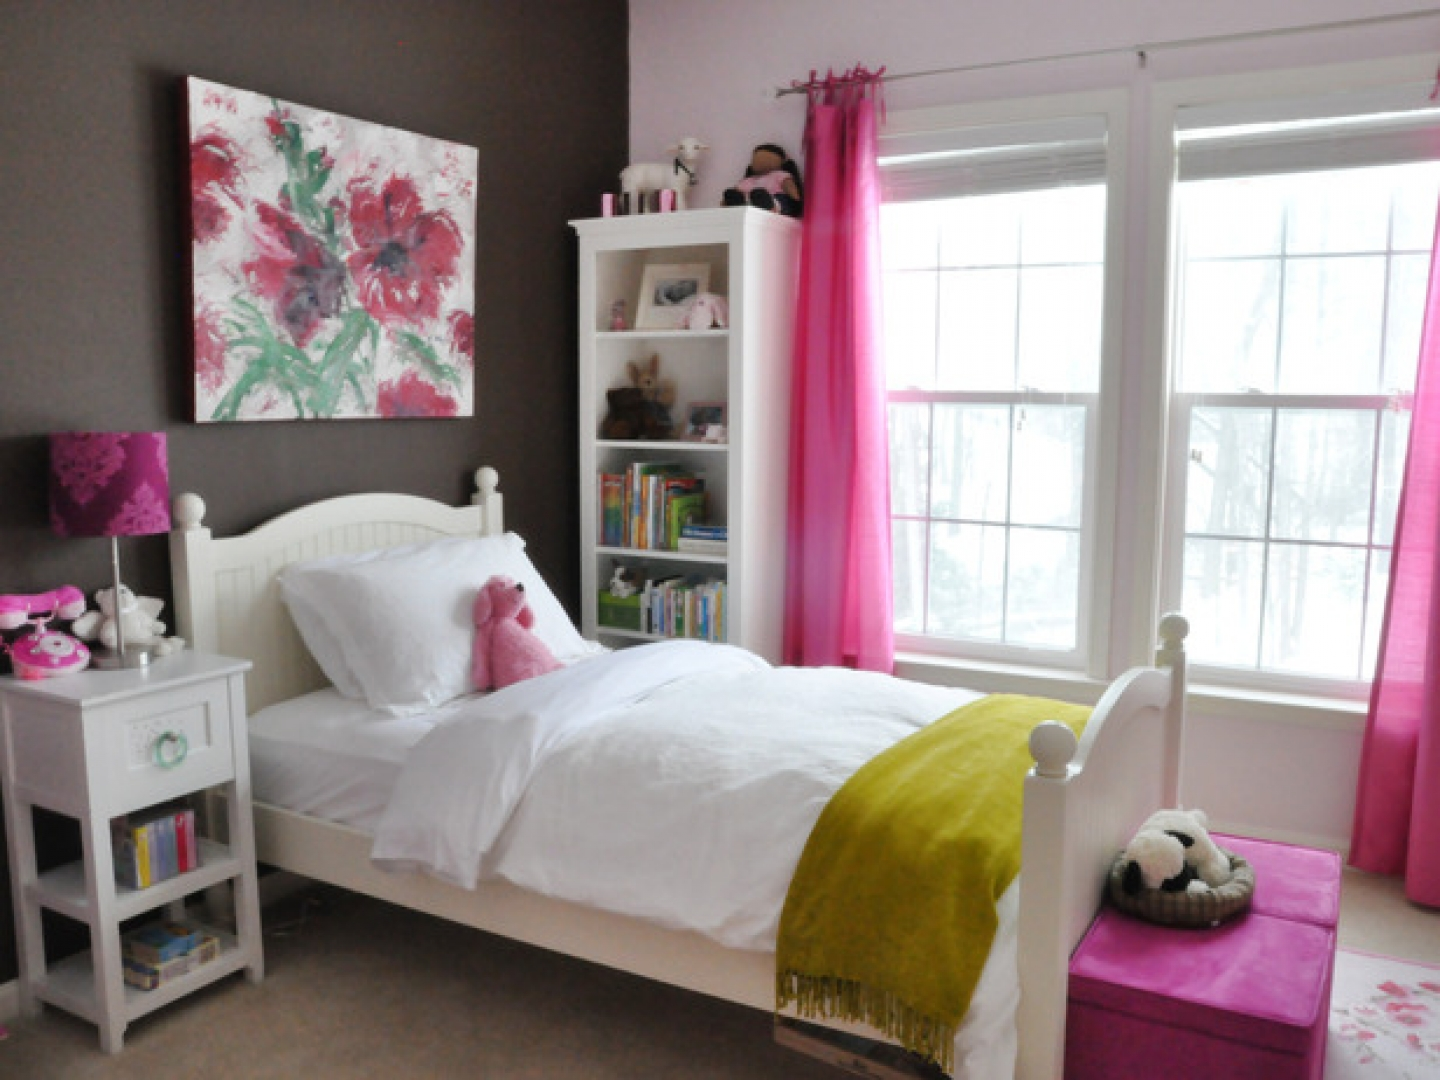 decorating ideas for girls bedroom photo - 2